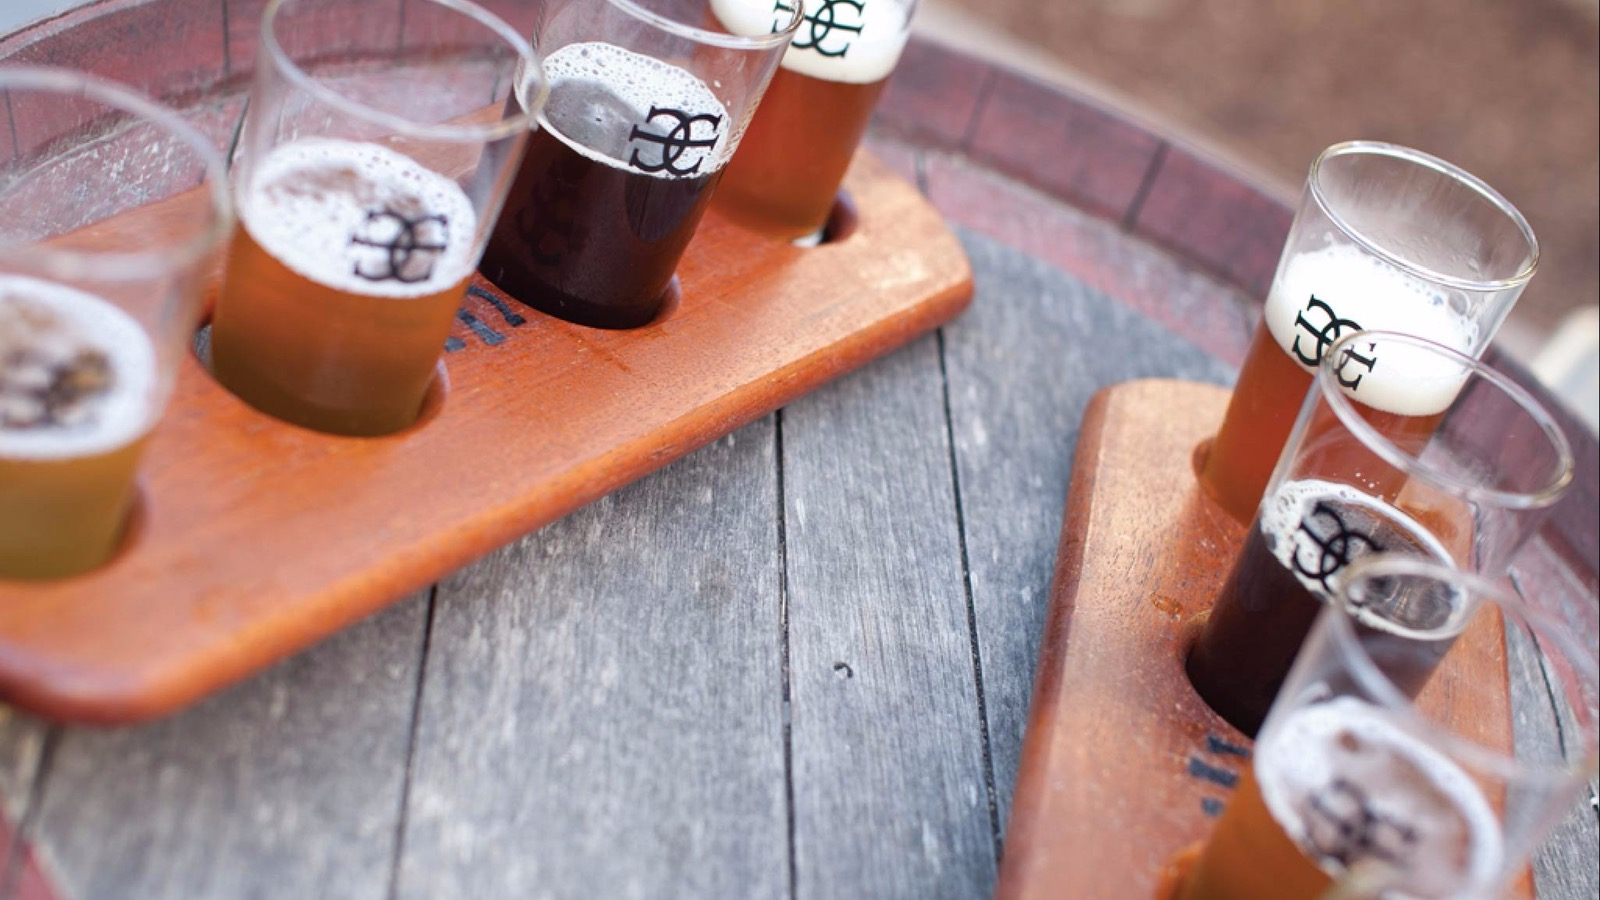 mornington peninsula brewery beer tasting paddle